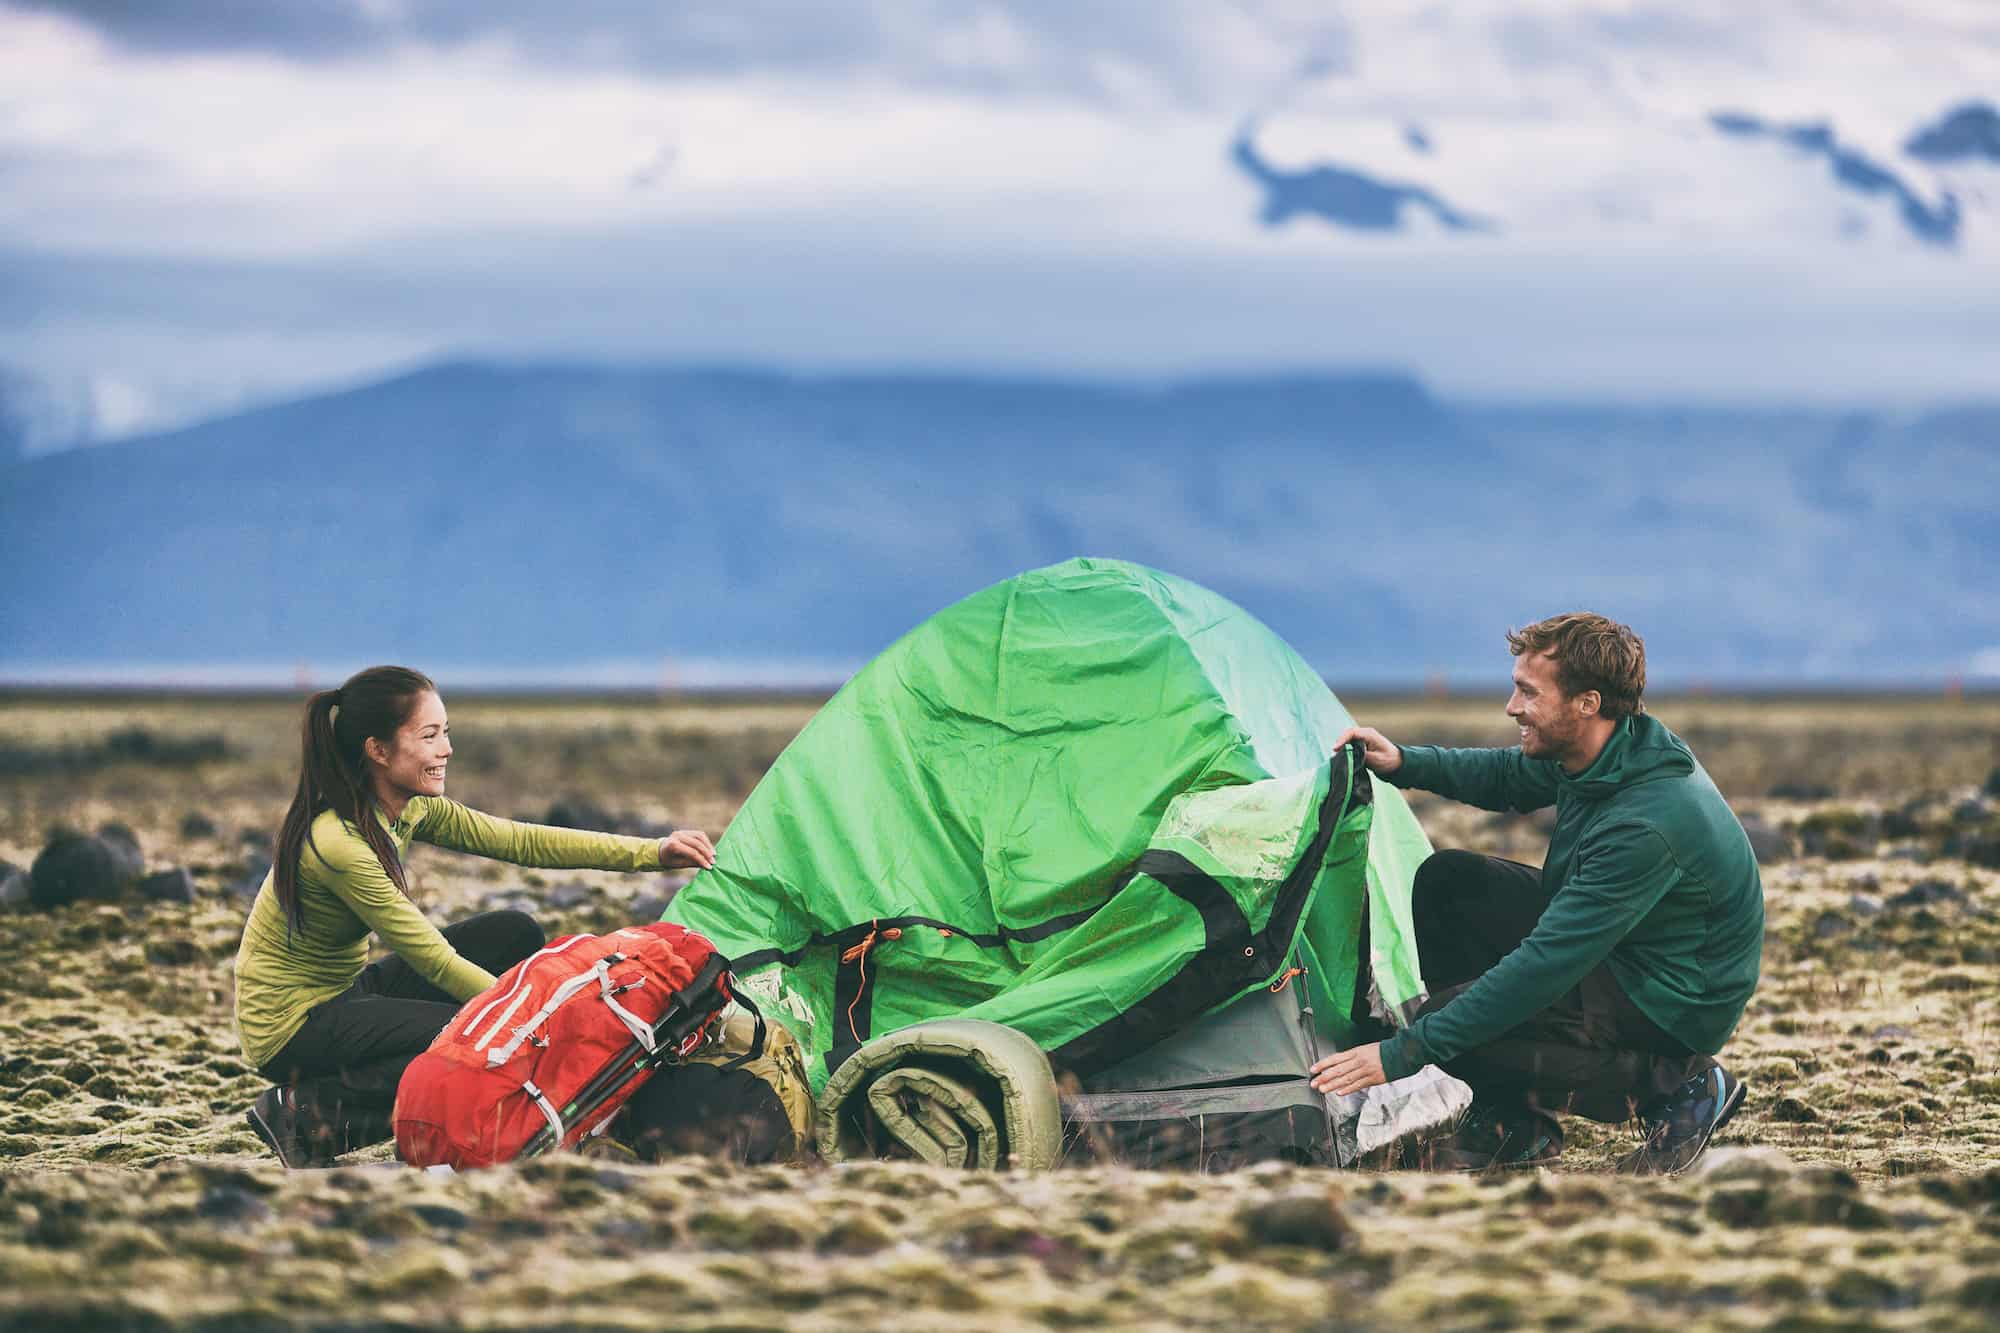 15 Outdoor Gear Companies with a Warranty